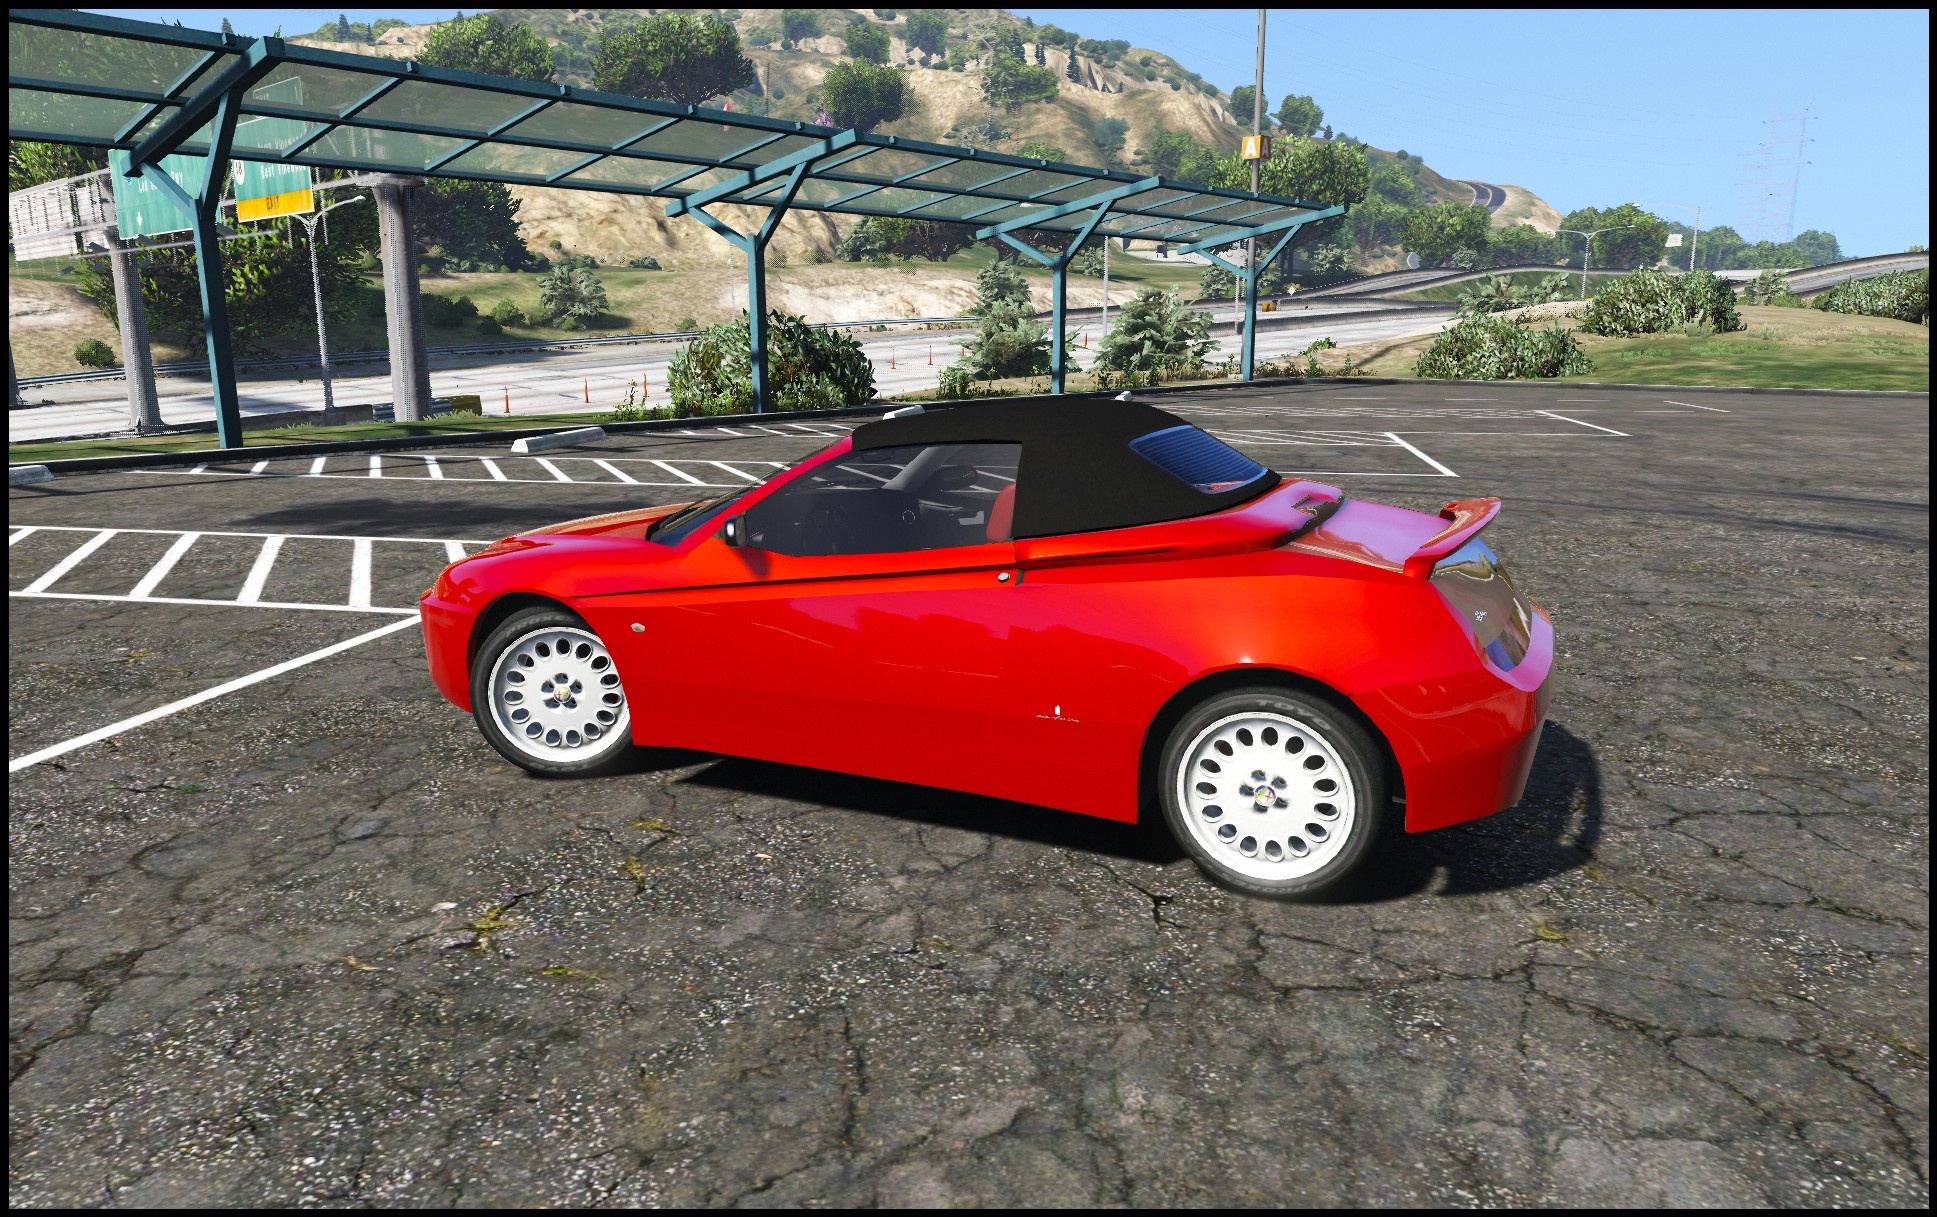 Alfa Romeo Spider 916 [Add Replace] GTA5 Mods